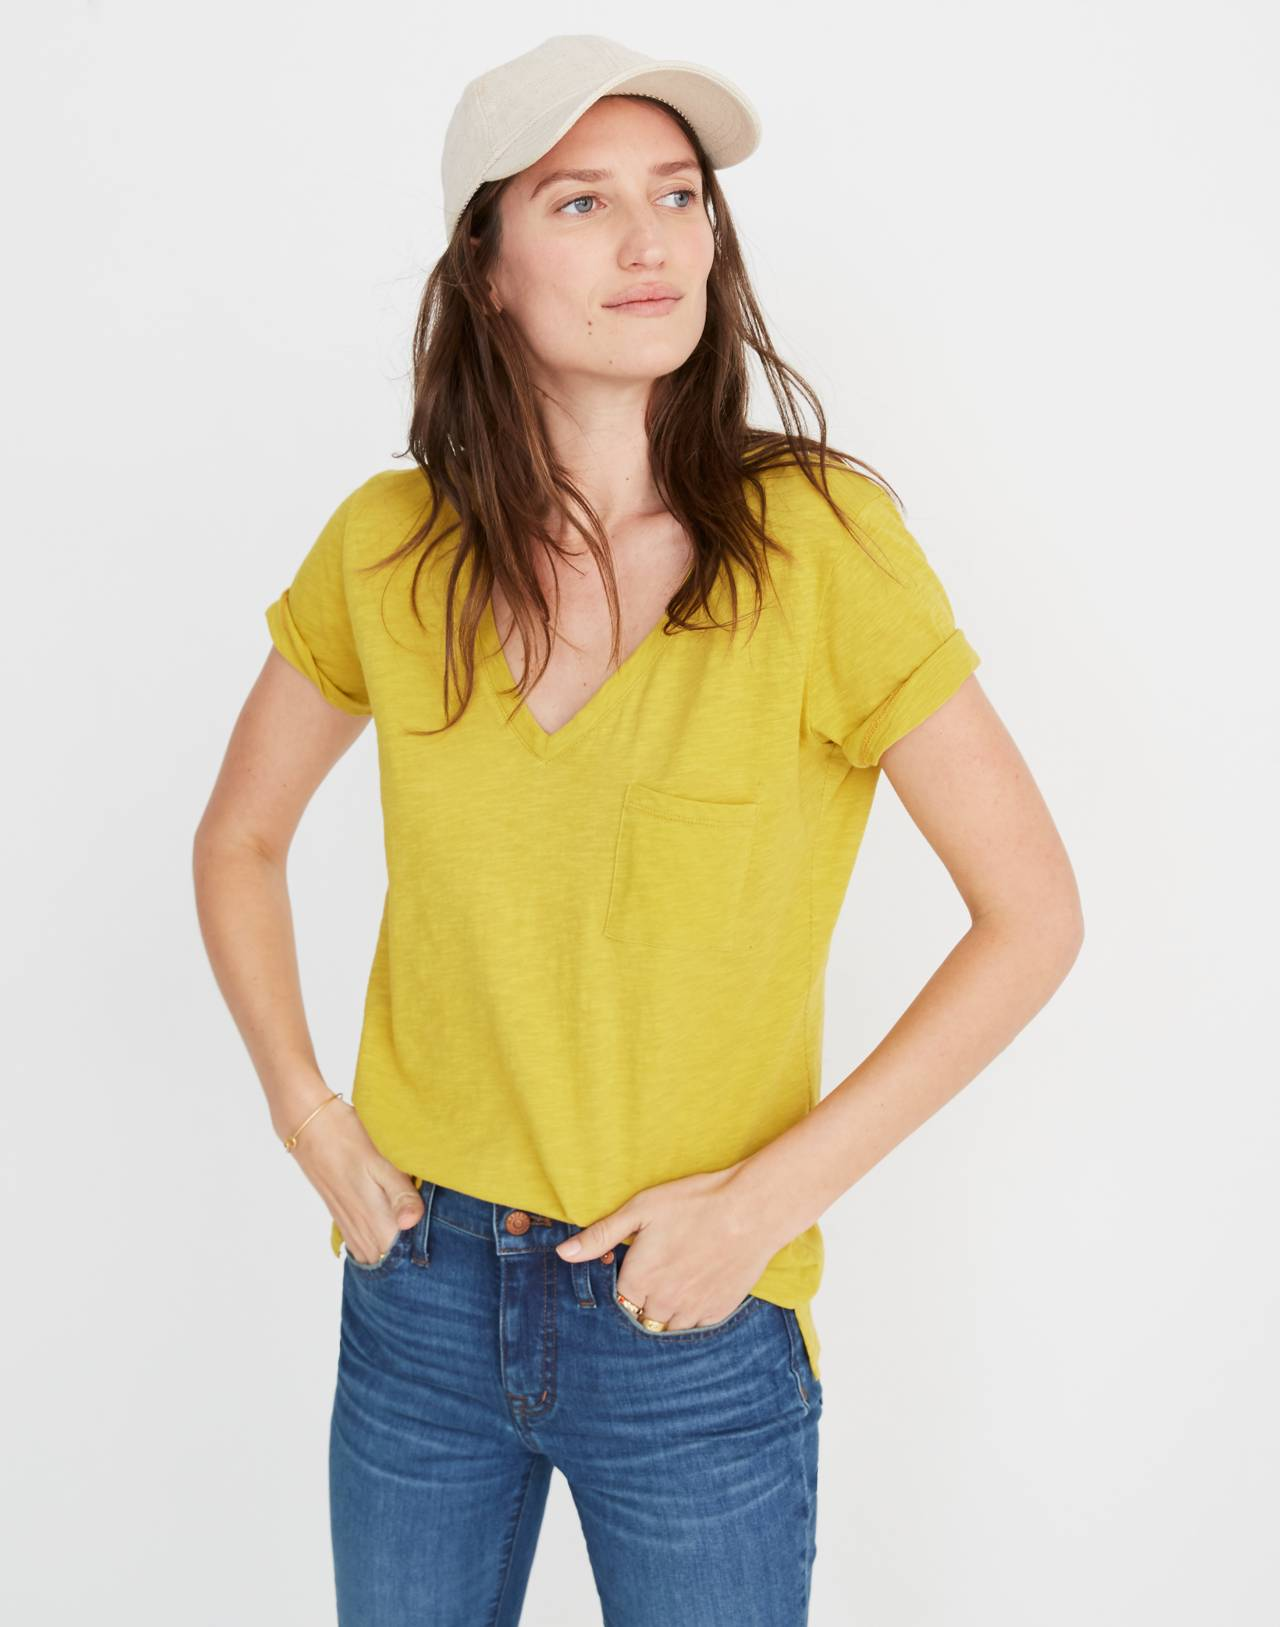 Whisper Cotton V-Neck Pocket Tee in golden meadow image 1